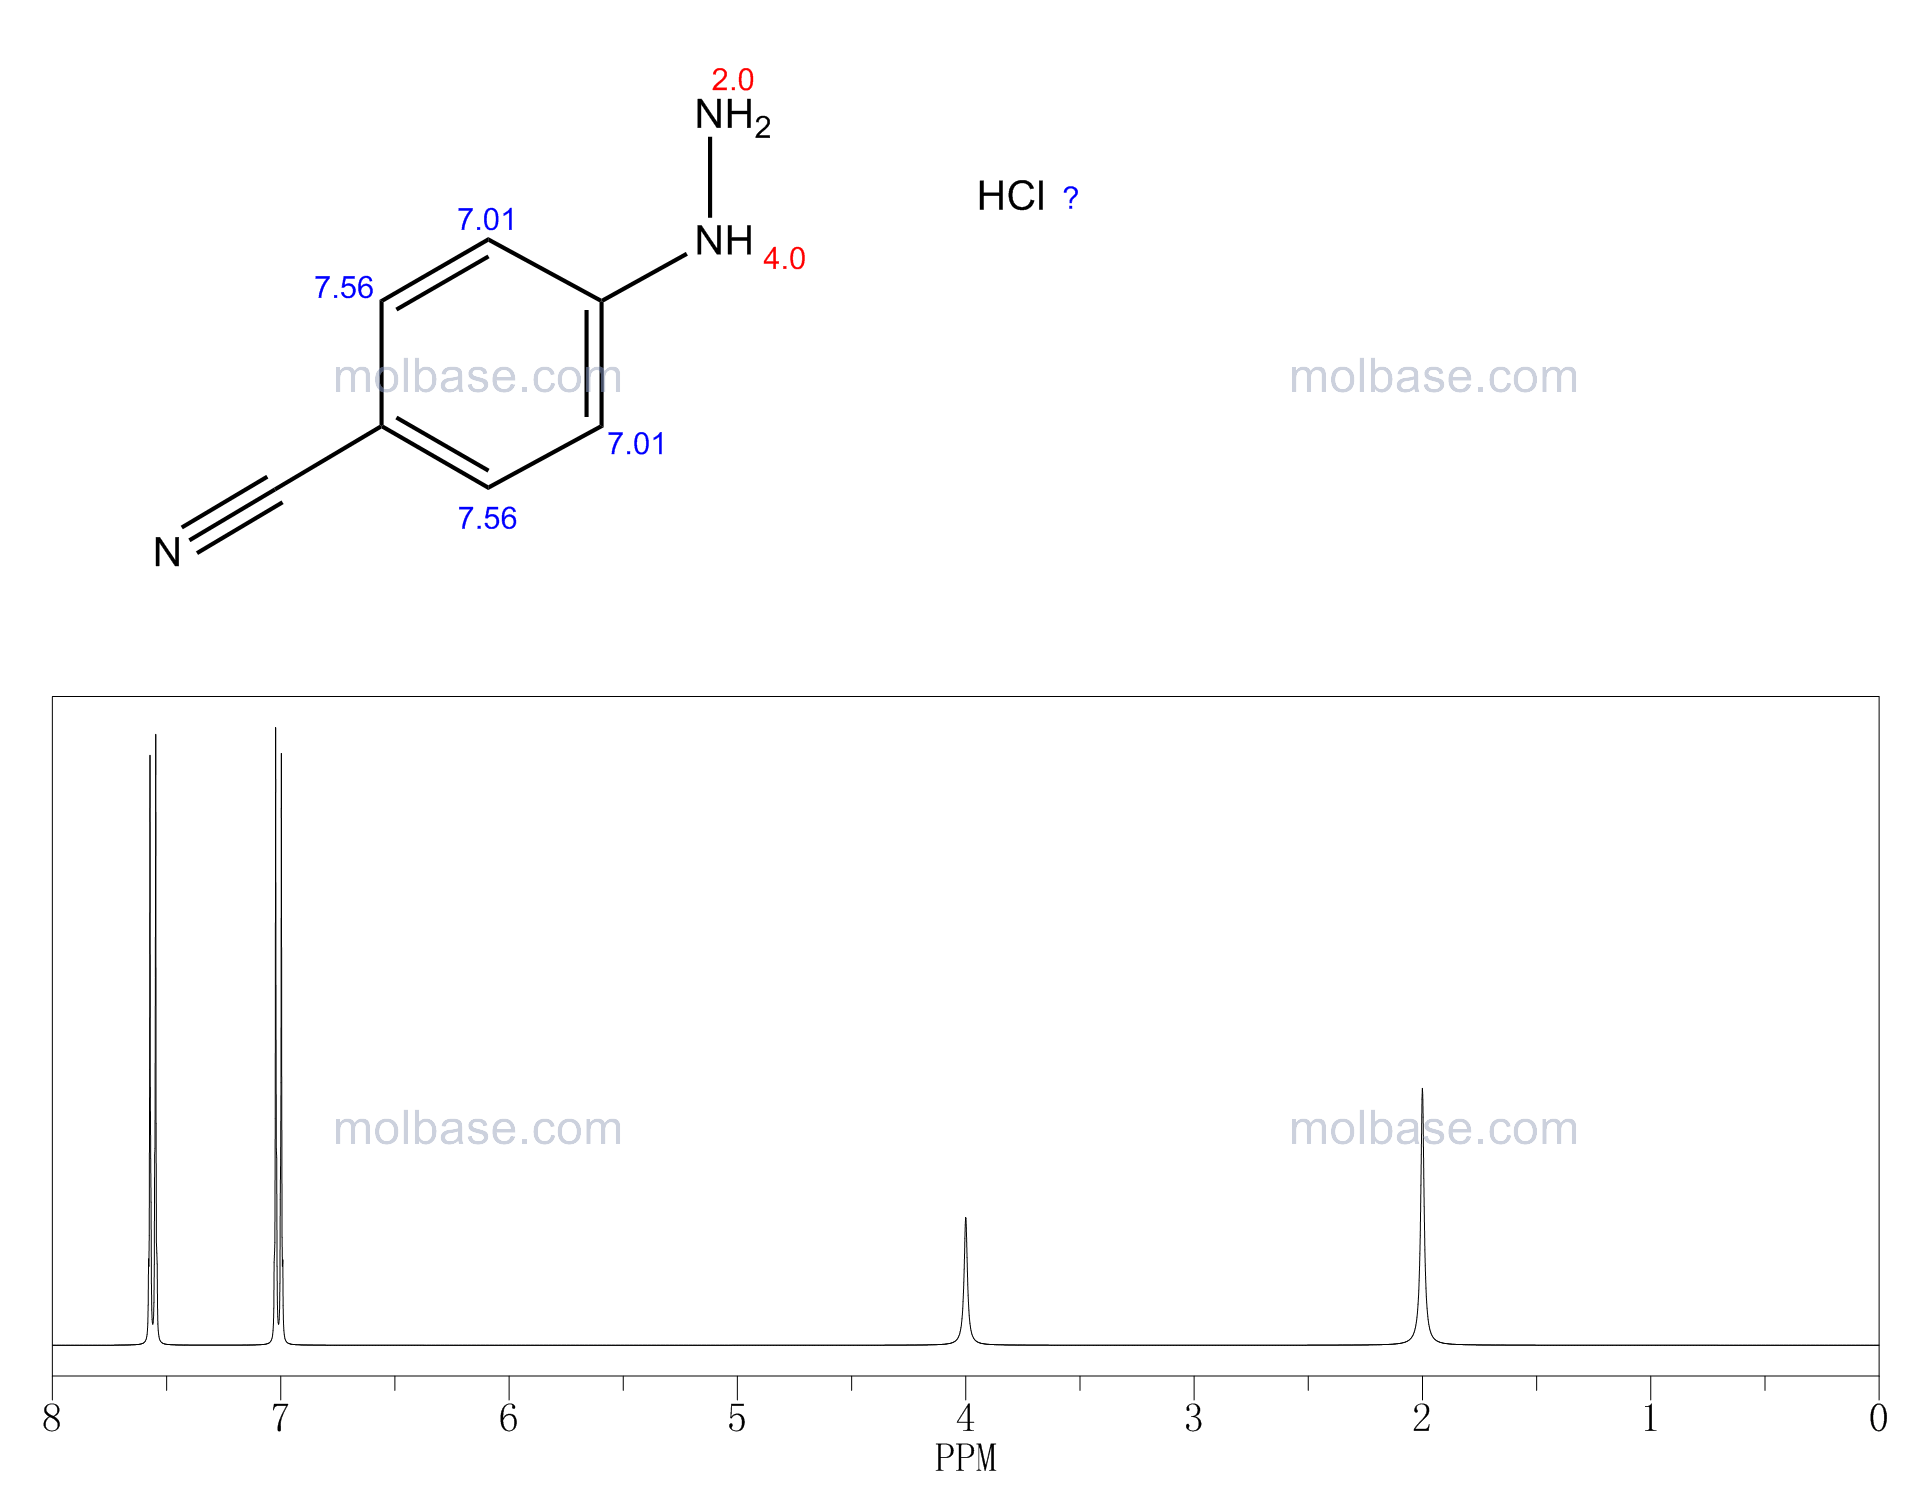 4-hydrazinylbenzonitrile,hydrochloride NMR spectra analysis, Chemical CAS NO. 2863-98-1 NMR spectral analysis, 4-hydrazinylbenzonitrile,hydrochloride C-NMR spectrum